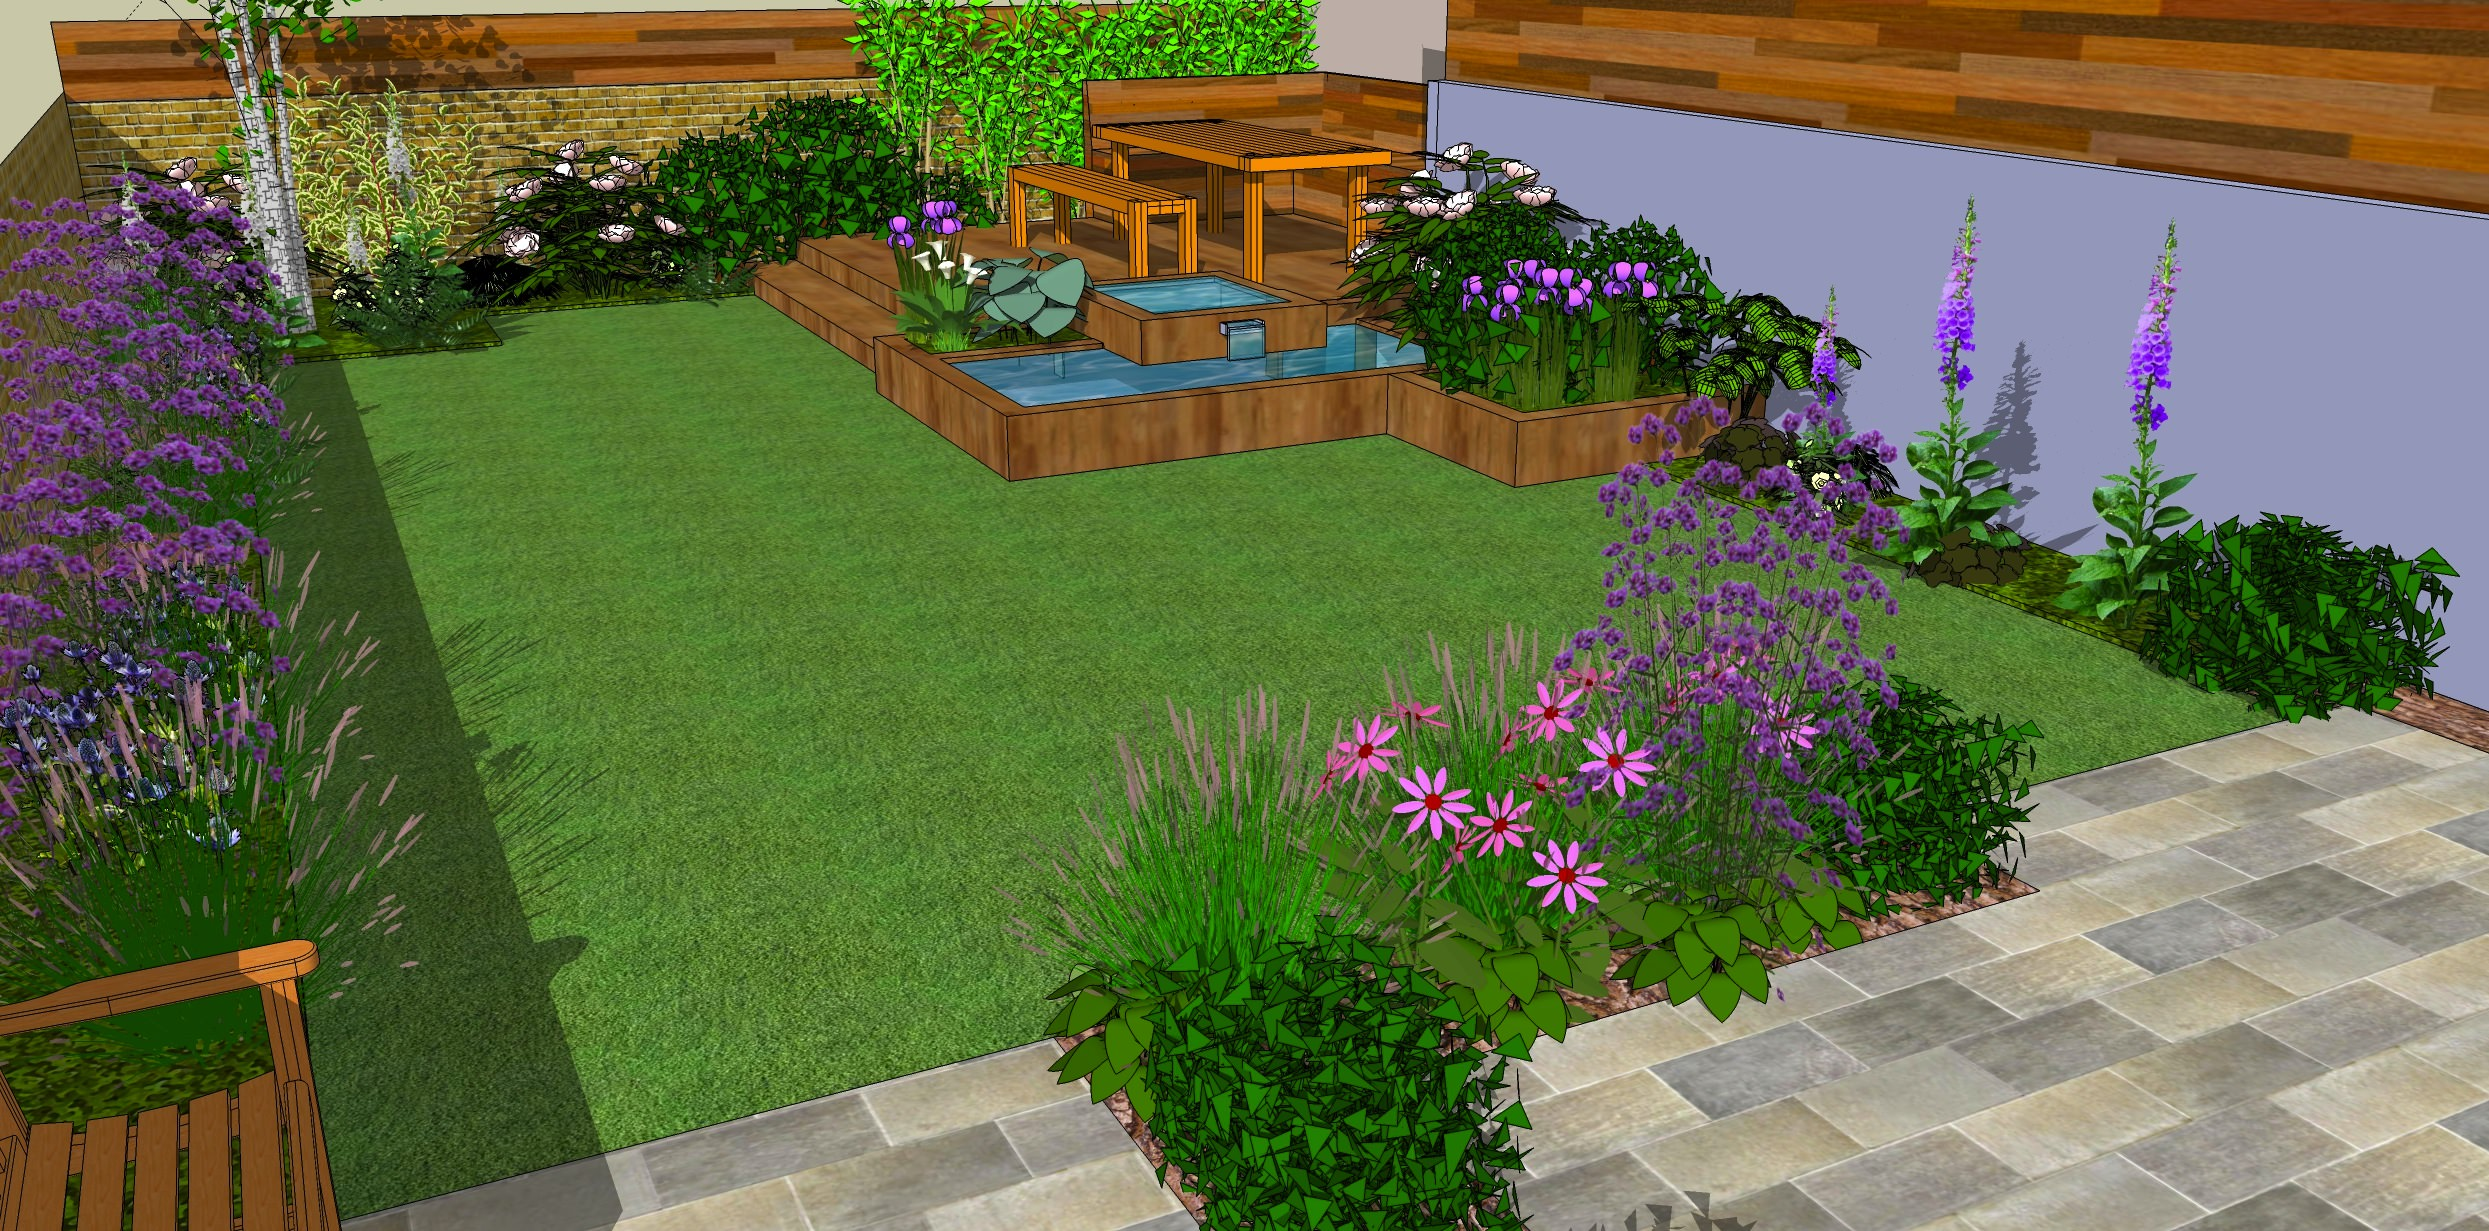 Low maintenance garden designs garden club london for Simple garden designs for small gardens